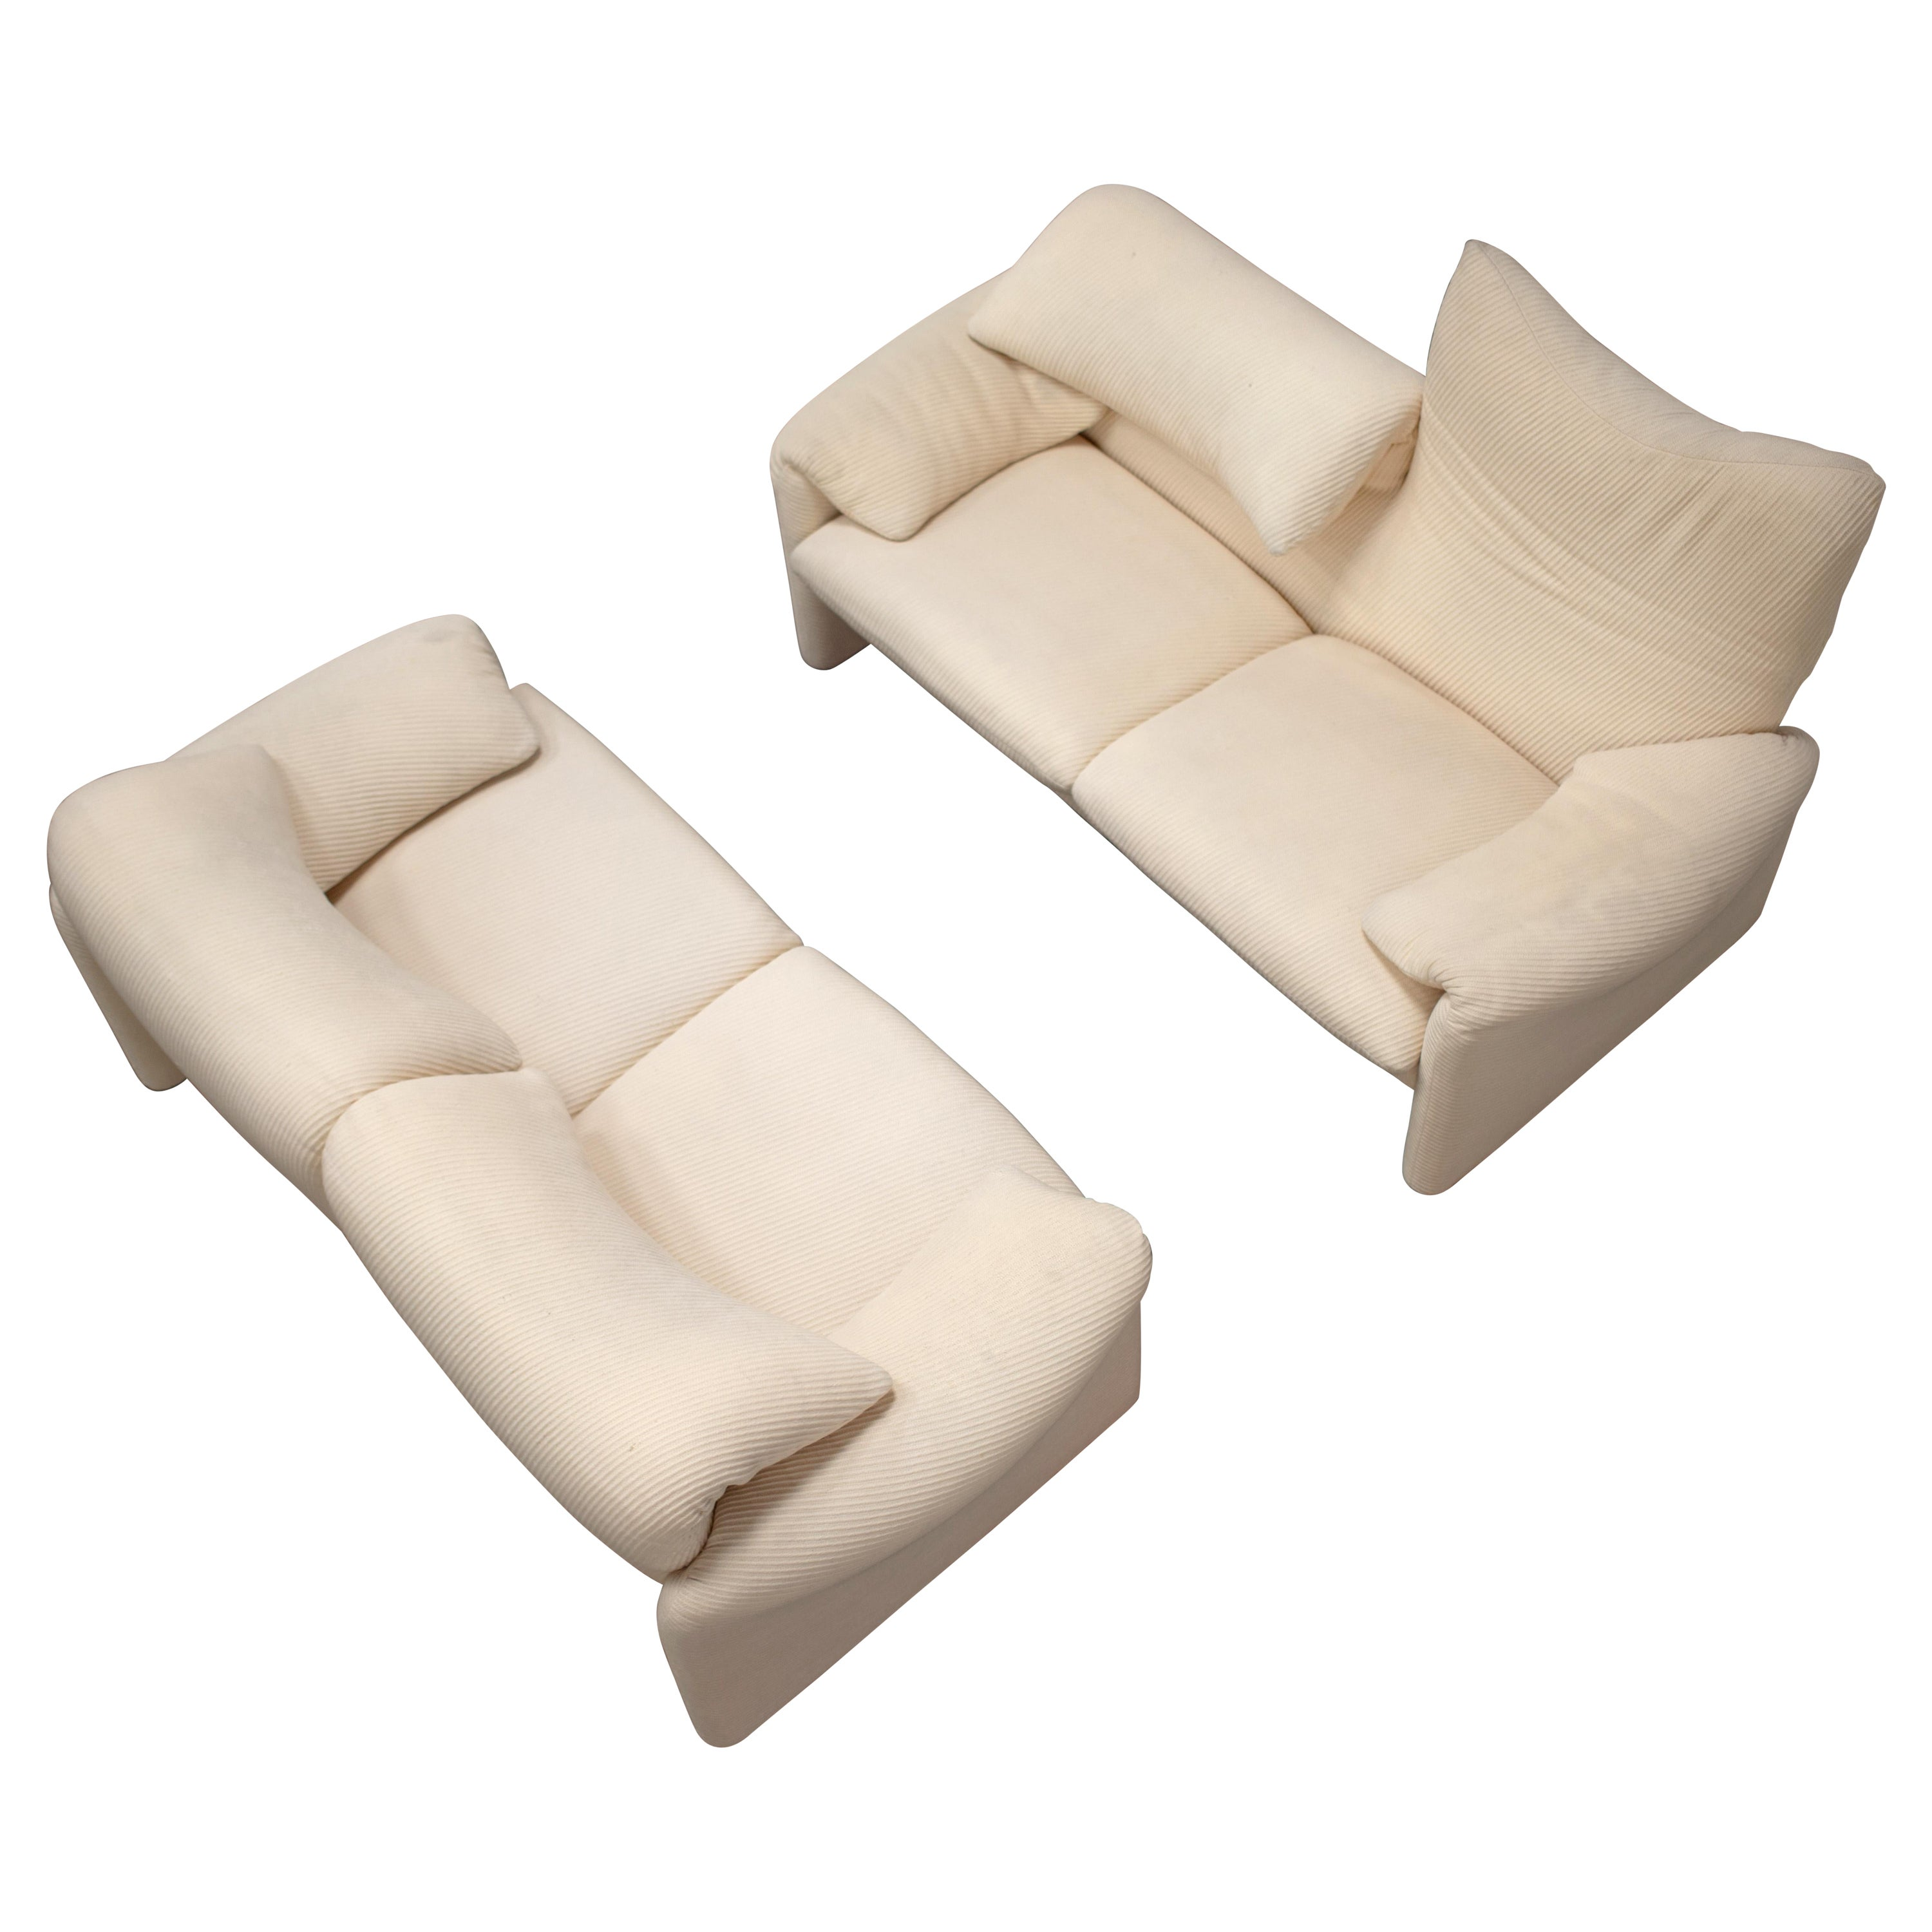 1970s Pair of 2-Seater Maralunga Sofas by Vico Magistretti for Cassina